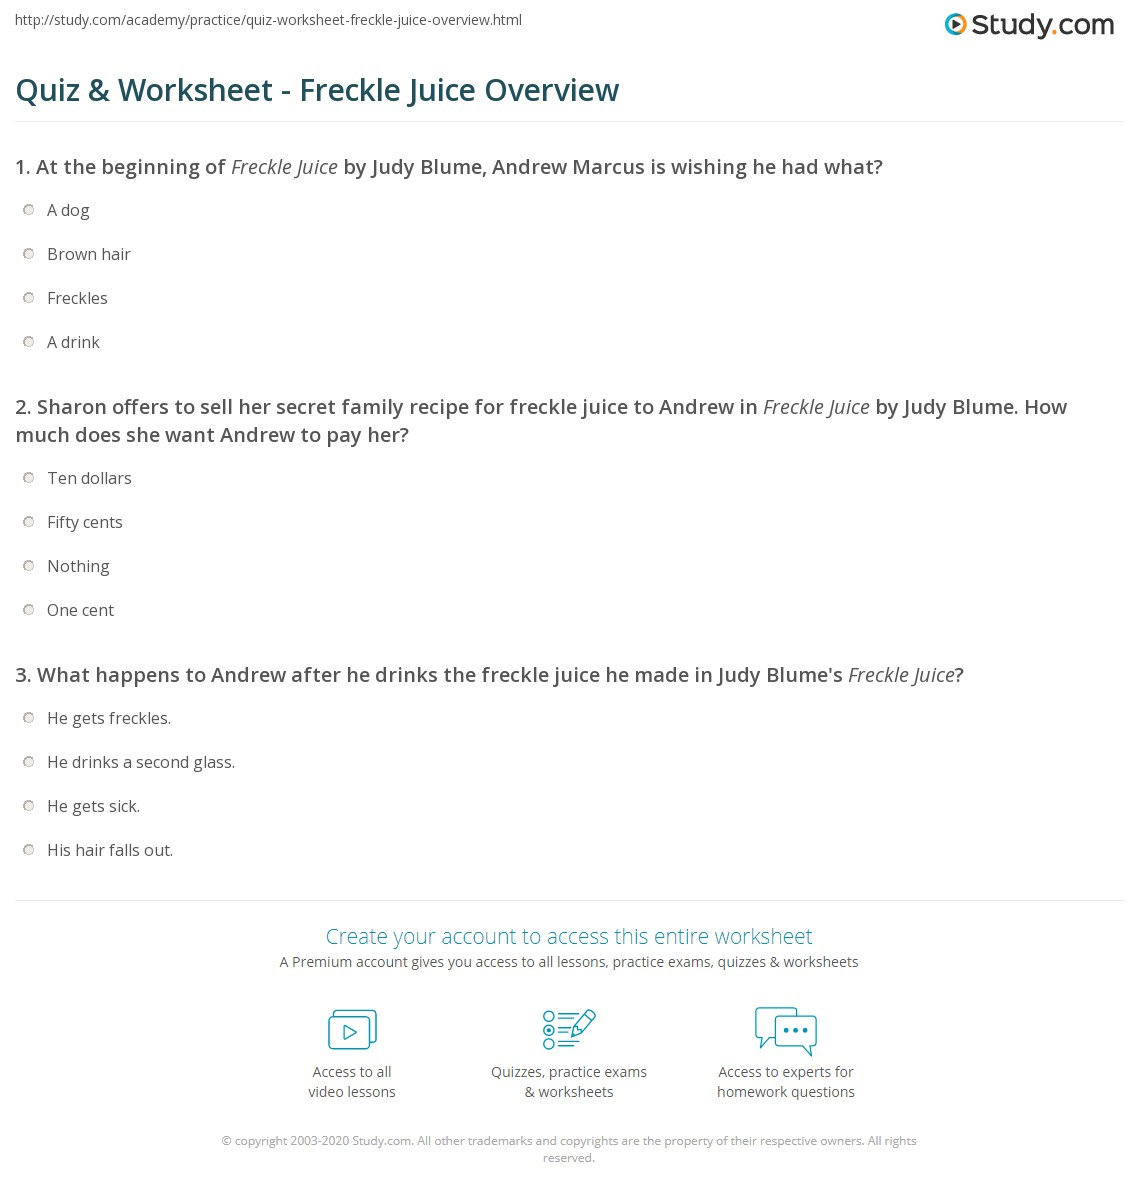 Worksheet Freckle Juice Worksheets quiz worksheet freckle juice overview study com print summary worksheet